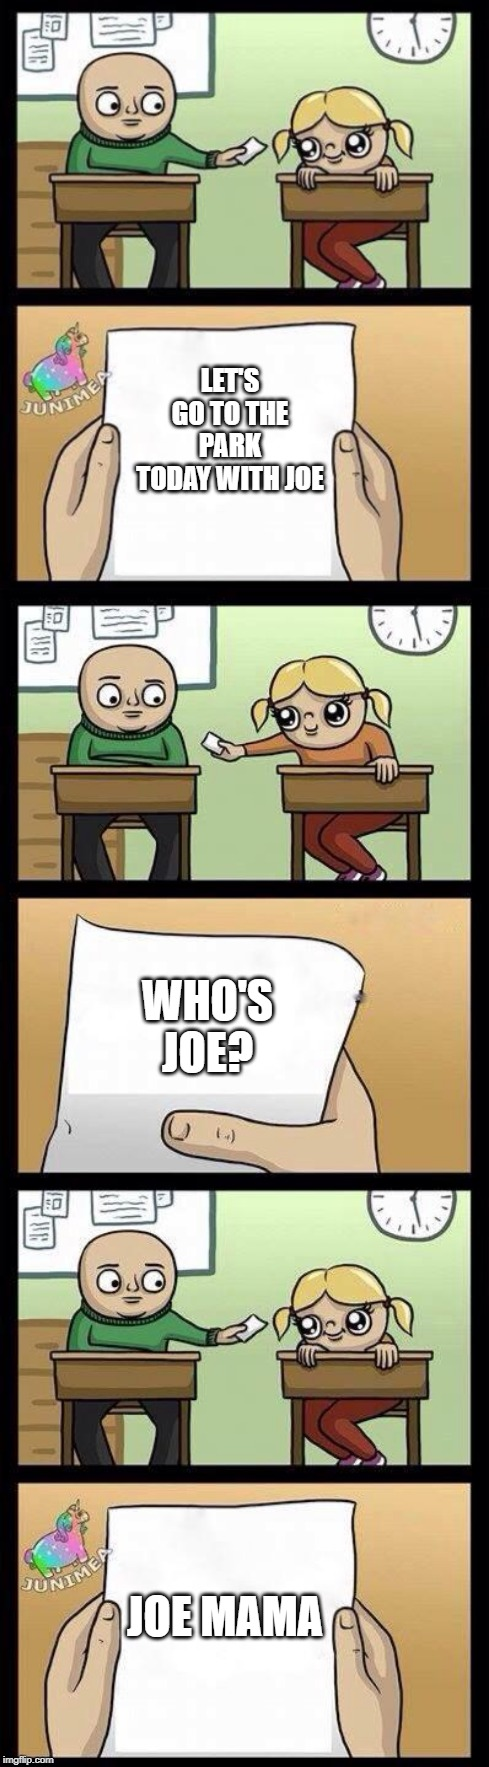 LET'S GO TO THE PARK TODAY WITH JOE JOE MAMA WHO'S JOE? | image tagged in asdddddddddddd | made w/ Imgflip meme maker